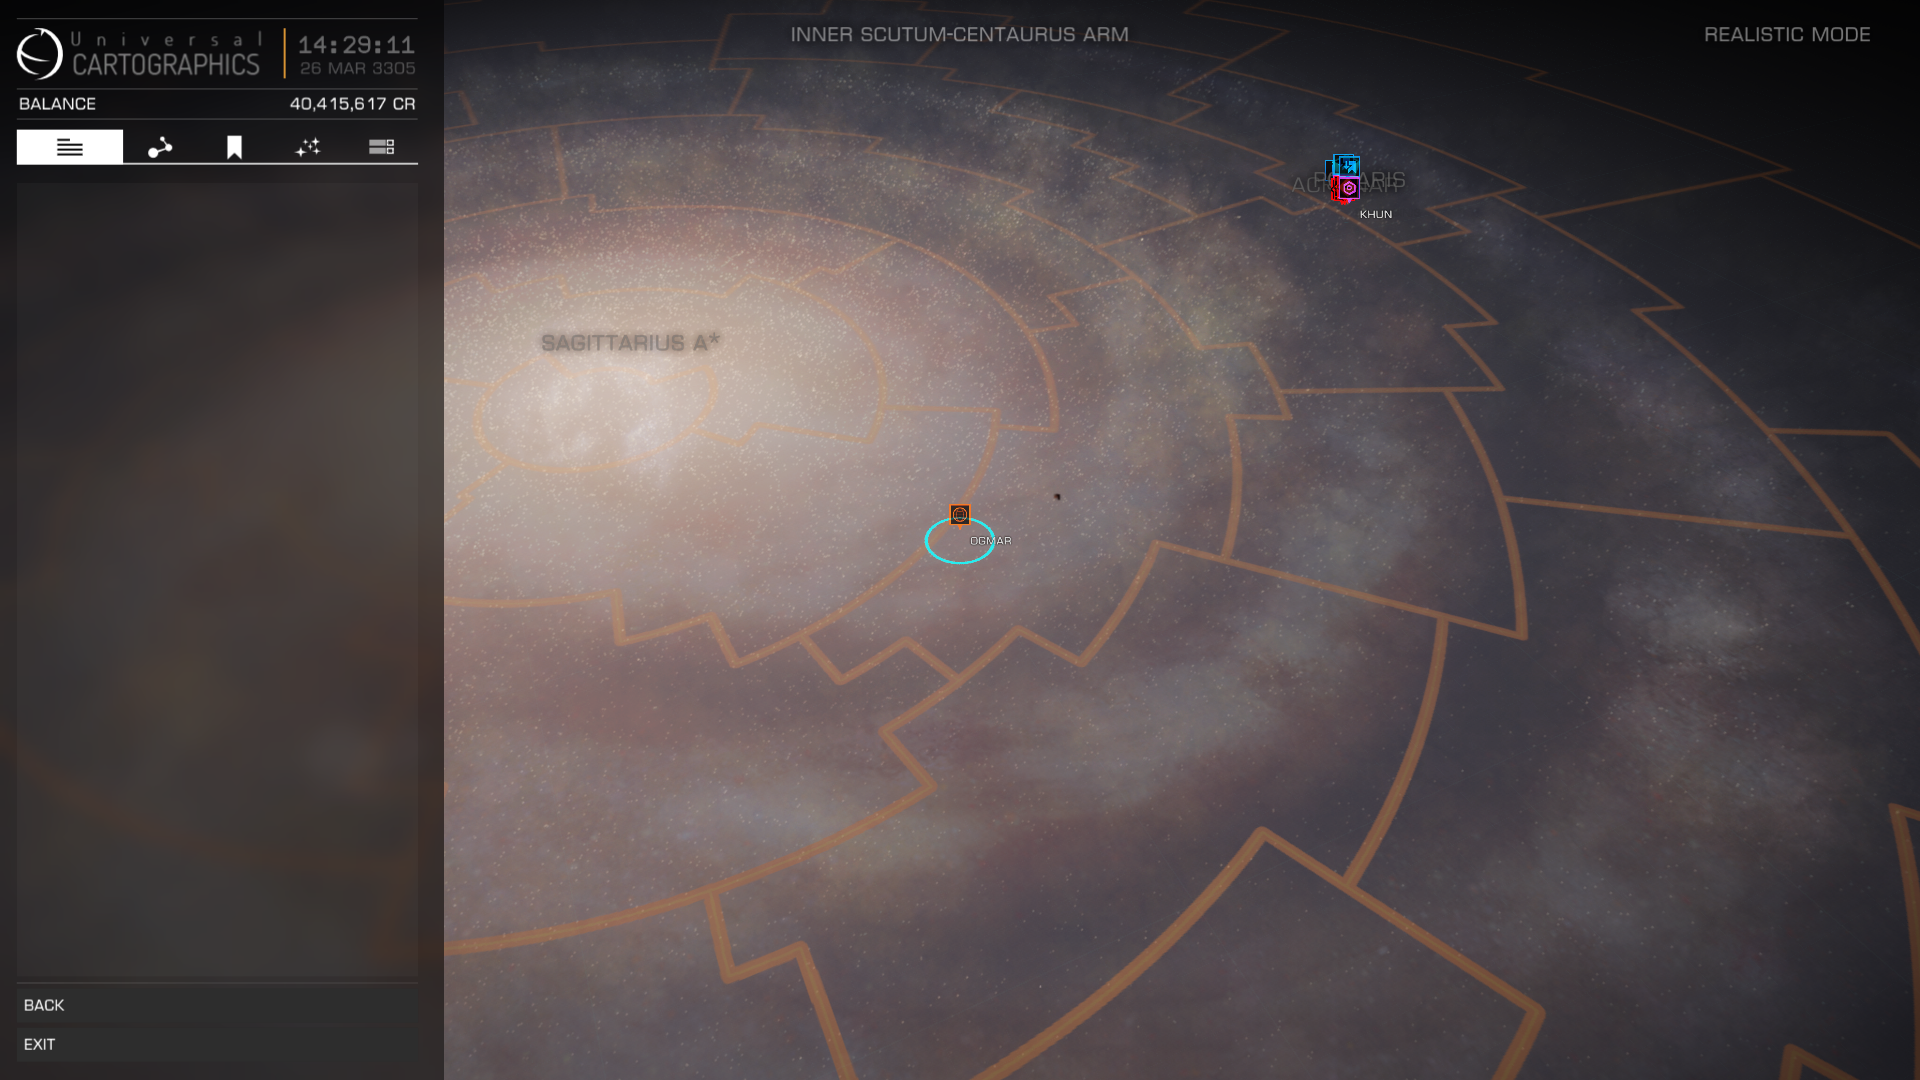 Elite: Dangerous - Anyone Out there? - Page 28 - Gaming - WoTLabs Forum